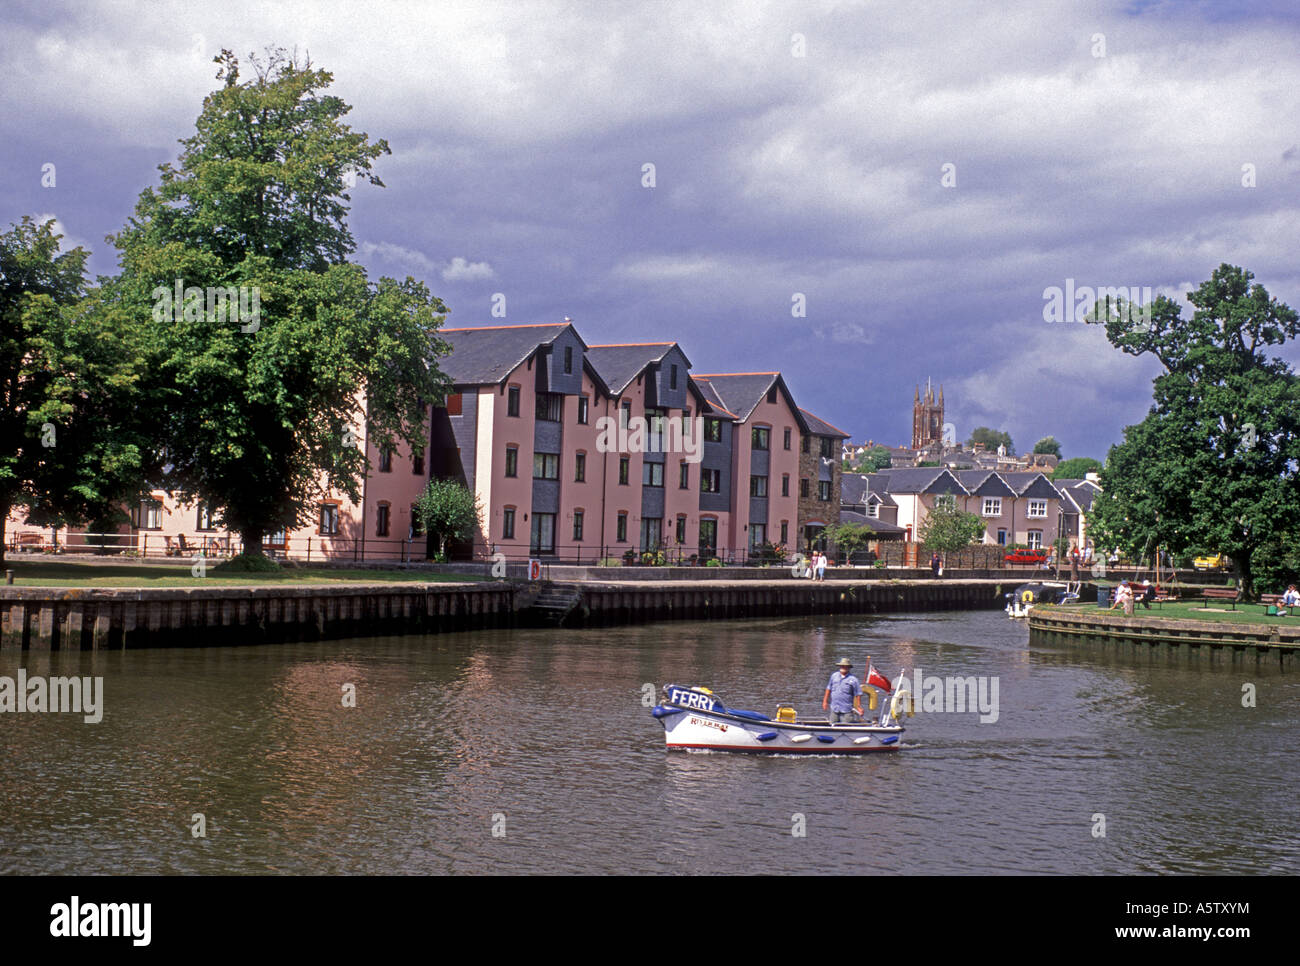 The market town of Totnes on the River Dart in South Devon. XPL 5016-468 - Stock Image